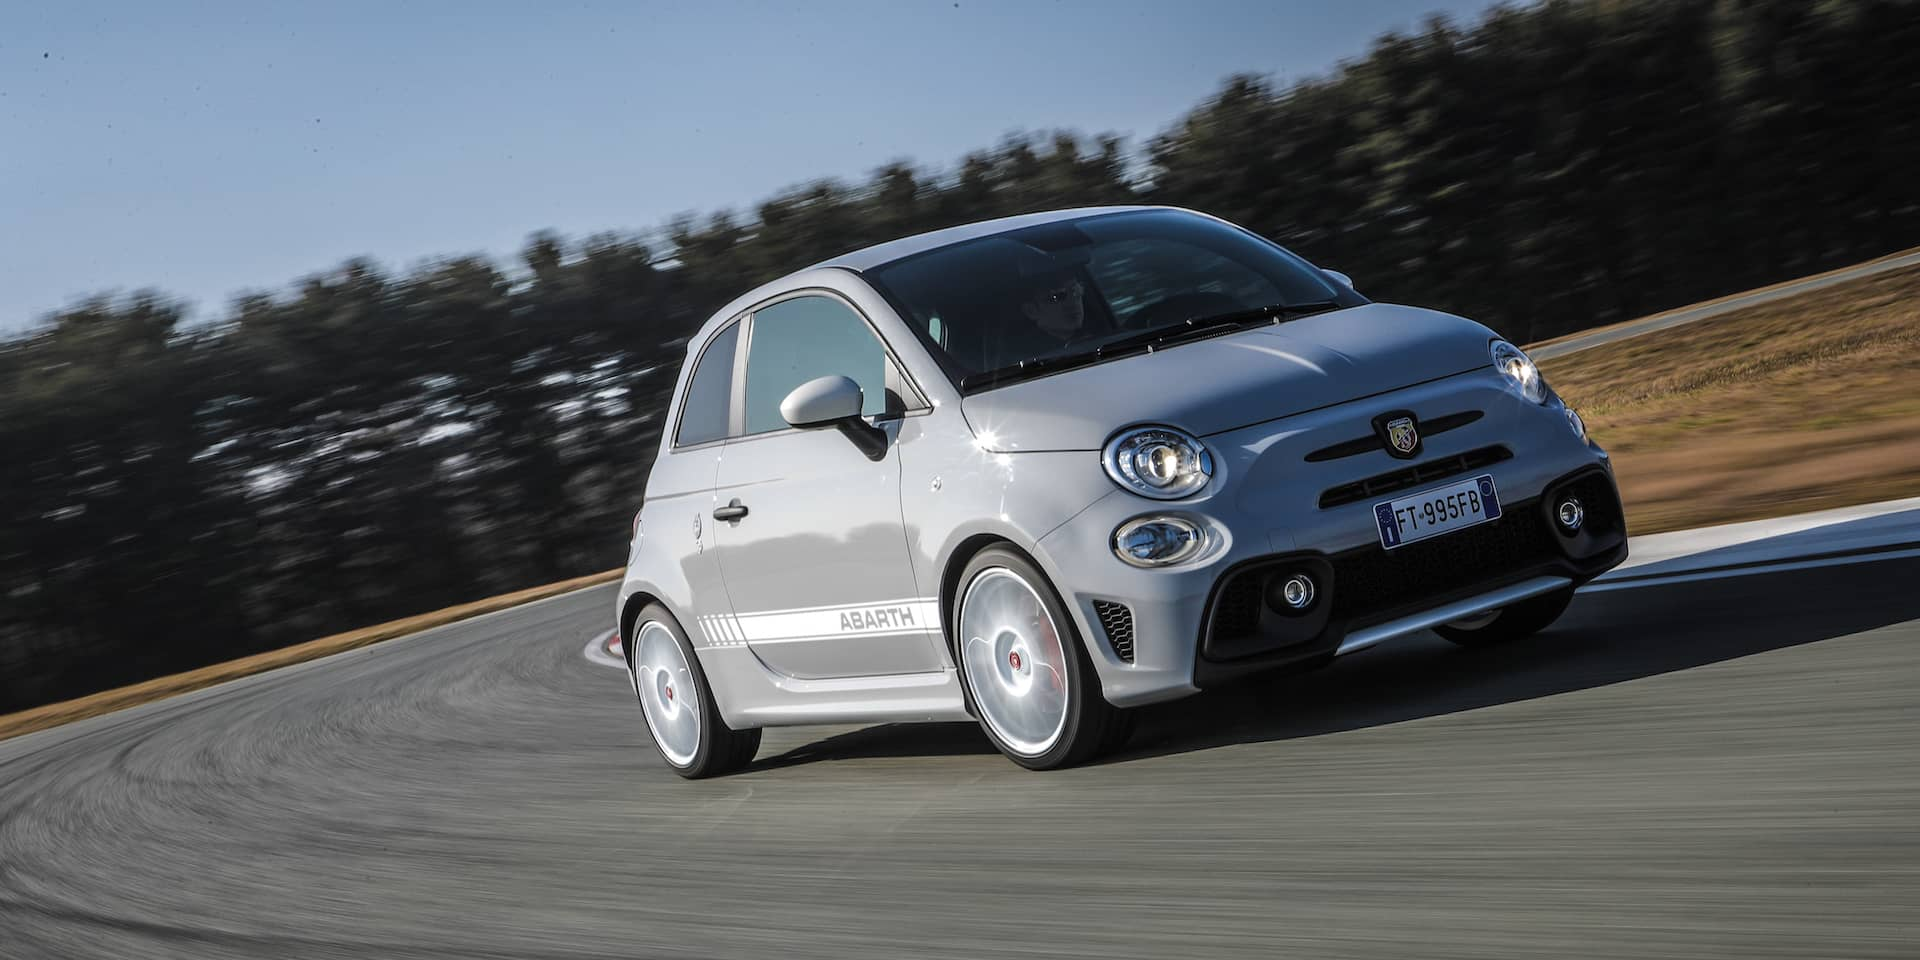 Abarth 595 Esseesse Test Drive New Car Reviews 2020 The Car Expert